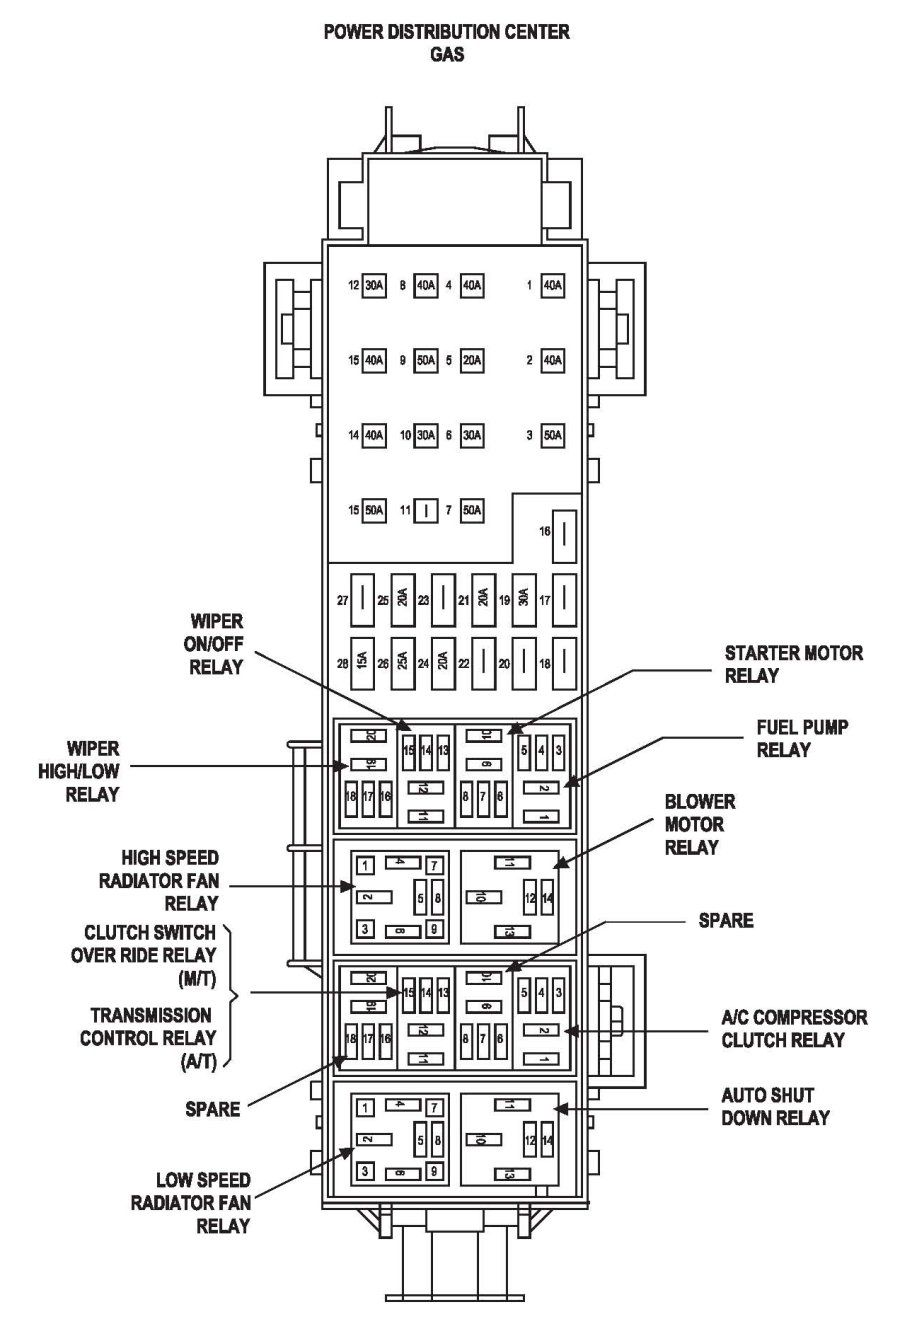 jeep liberty fuse box diagram image details jeep liberty ford f-150 fuse  panel diagram  fuse box diagram - wiring